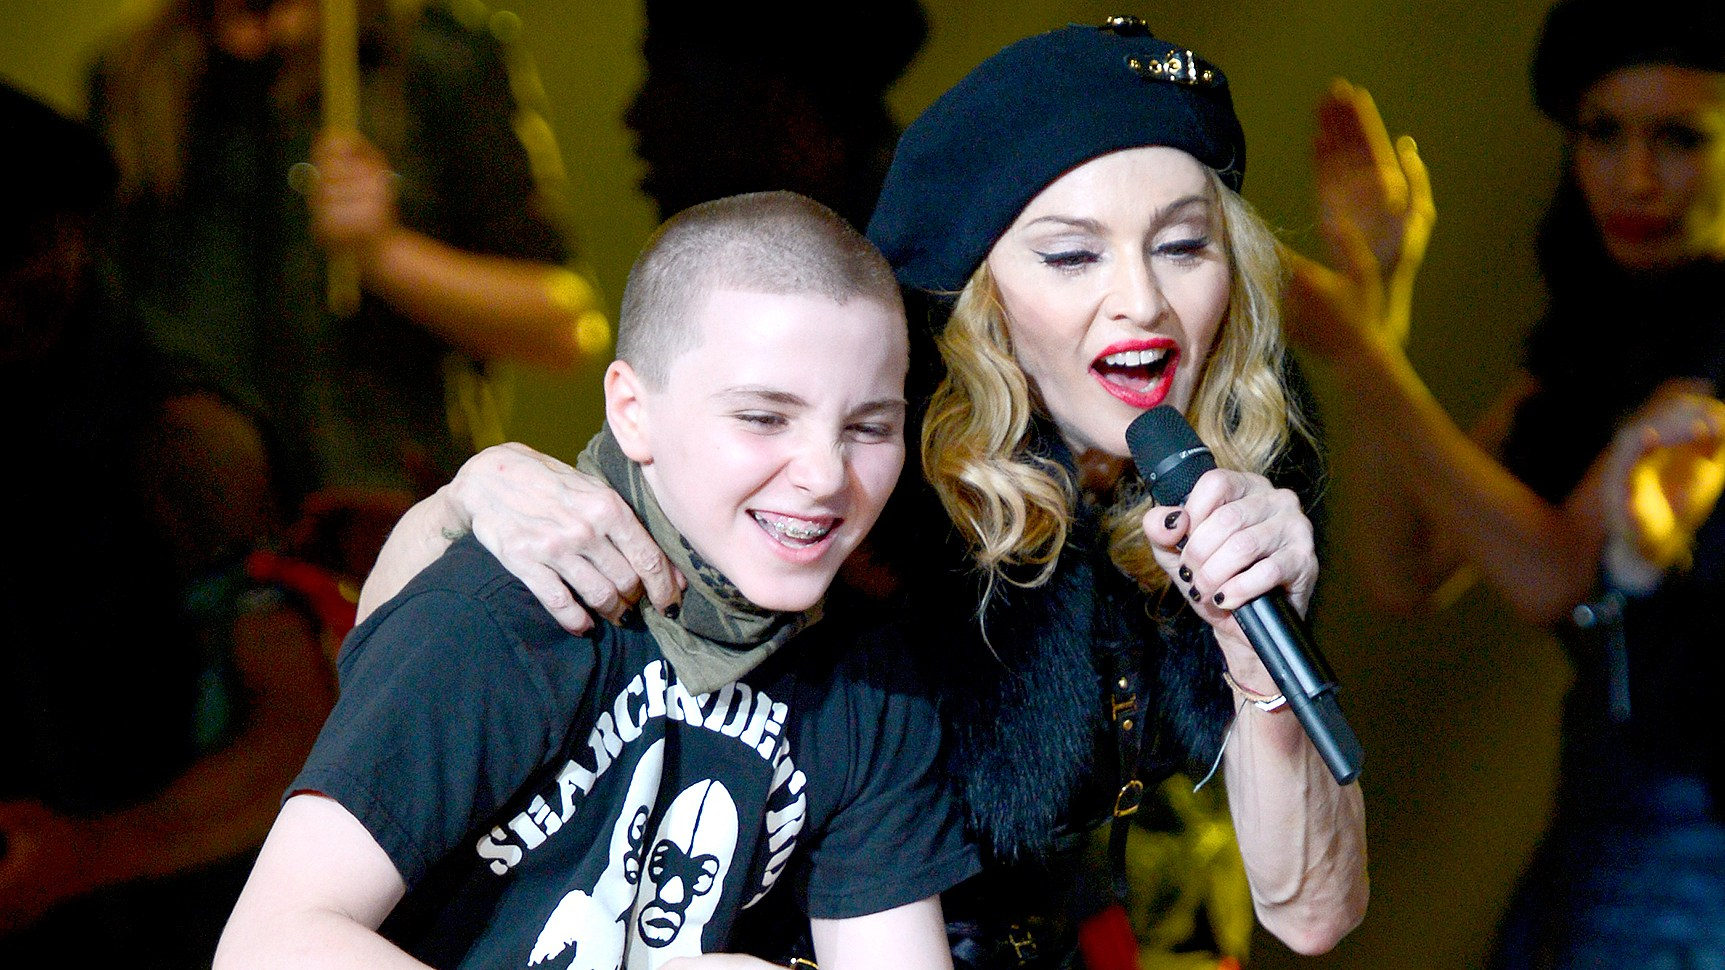 """Rocco Ritchie and Madonna perform on stage during her """"MDNA"""" tour at Ramat Gan Stadium on May 31, 2012 in Tel Aviv, Israel."""